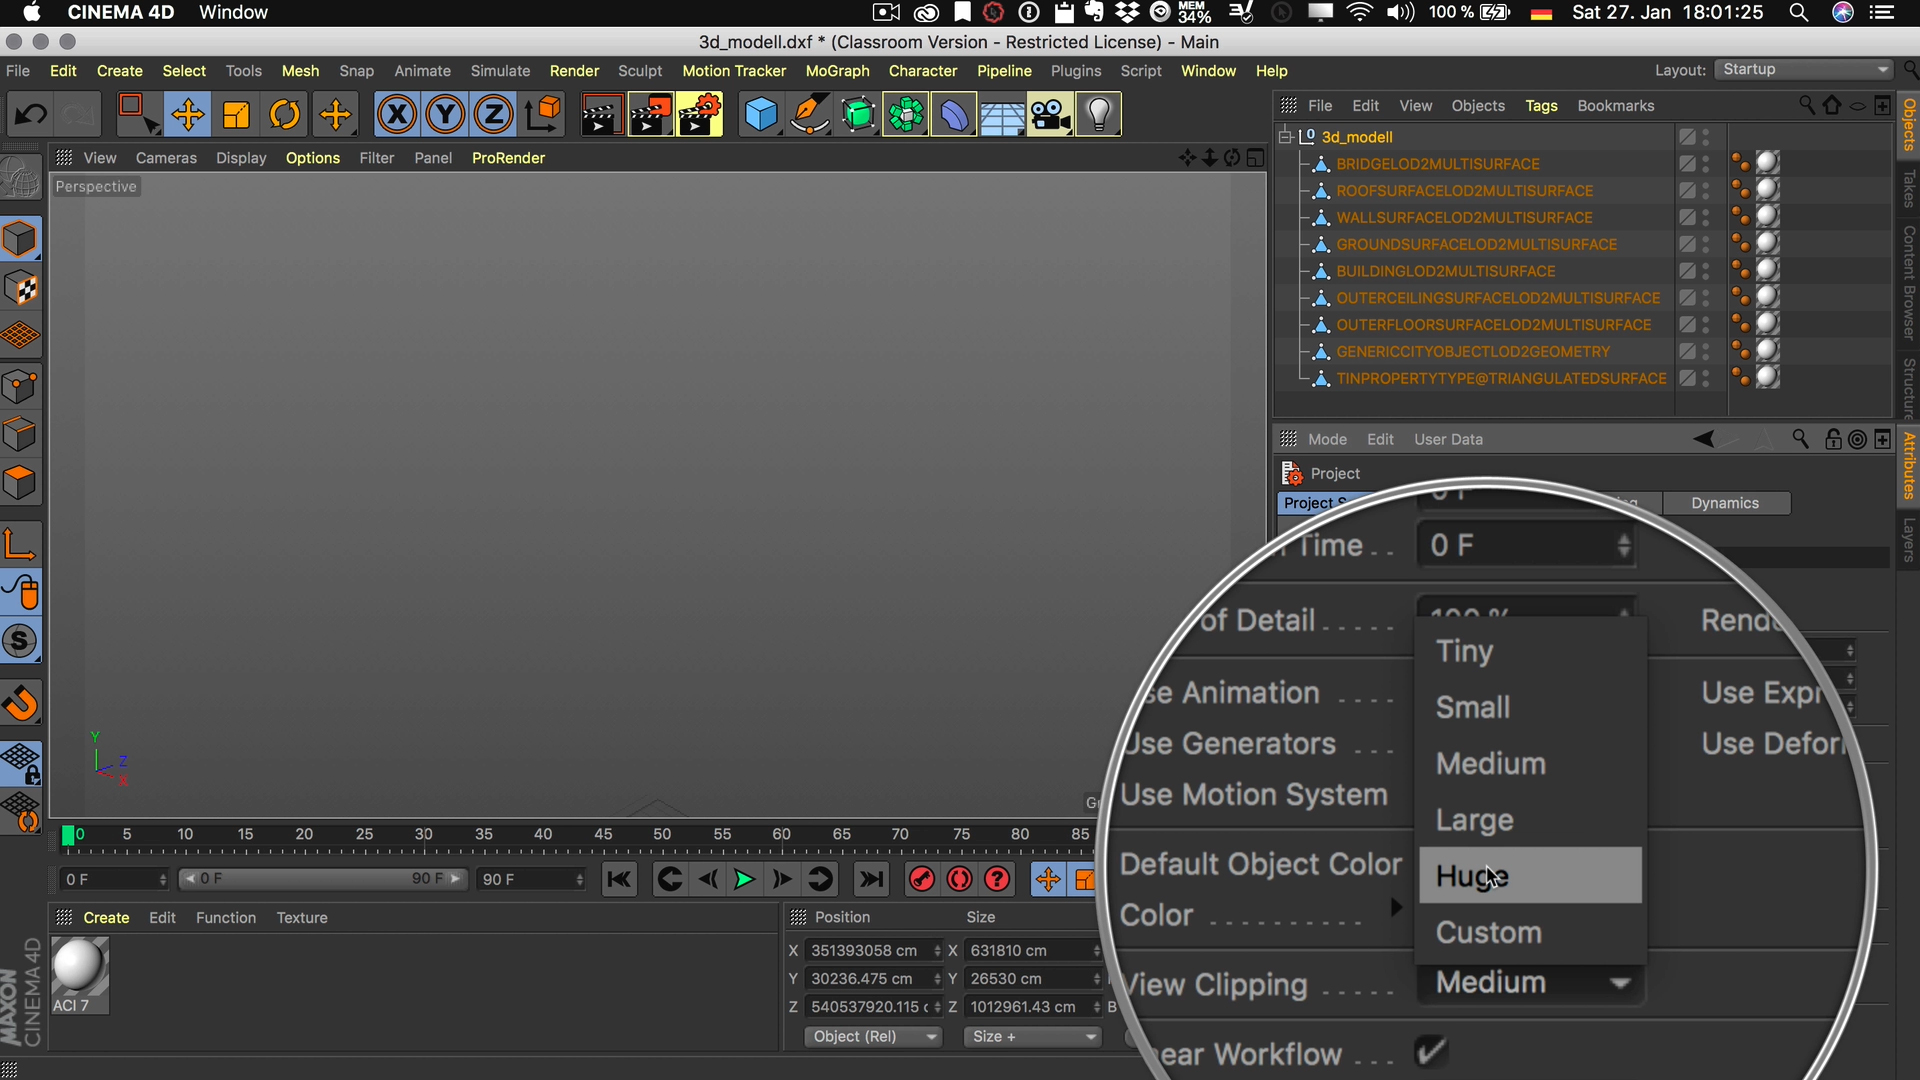 Cinema4D 3D-Stadtmodell Attribute Manager Projekt Sicht-Clipping Sehr groß